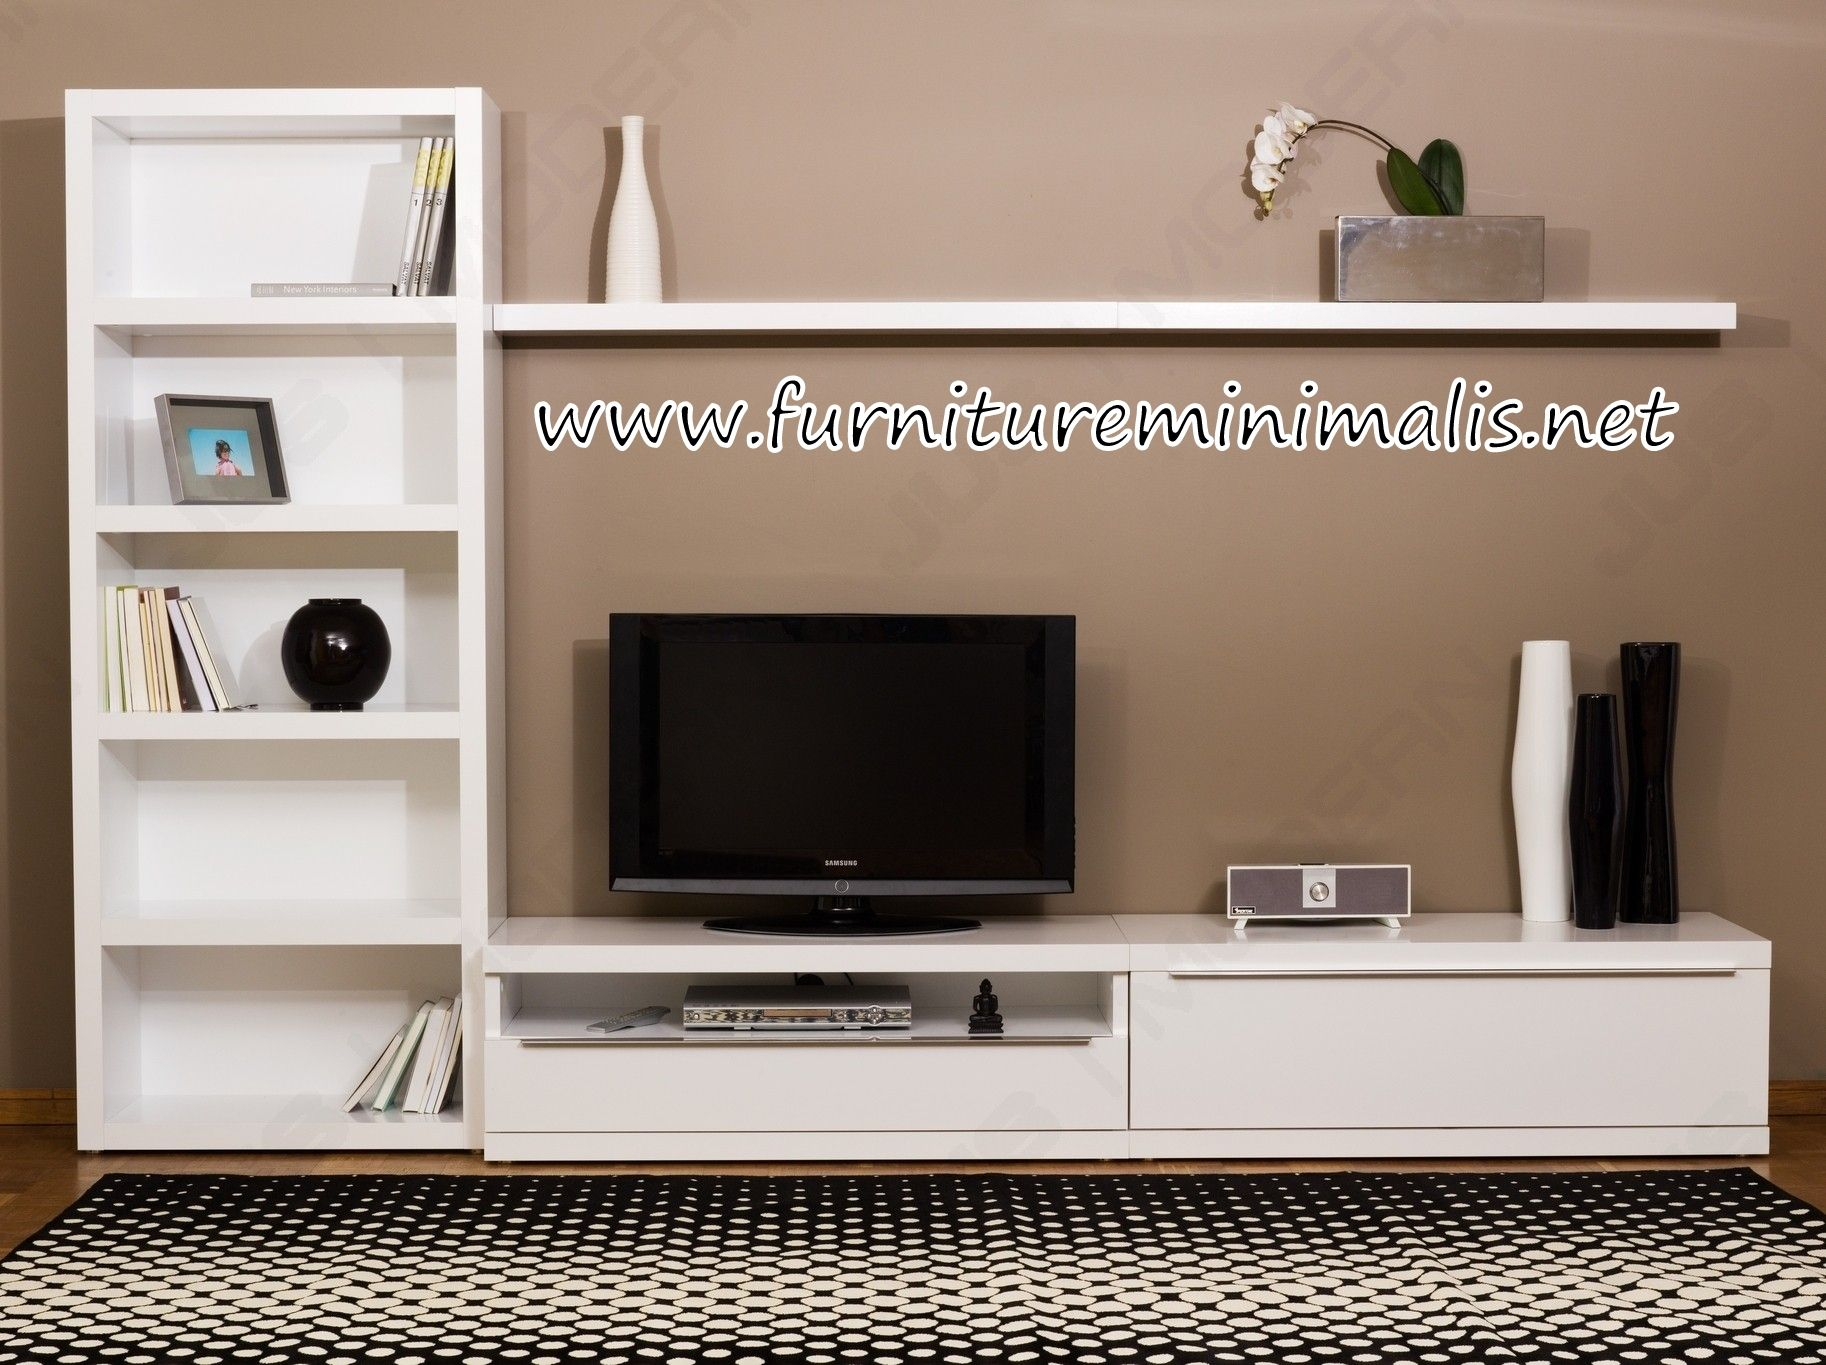 M S De 25 Ideas Incre Bles Sobre Rak Tv En Pinterest Estanter As  # Muebles Tipo Ikea